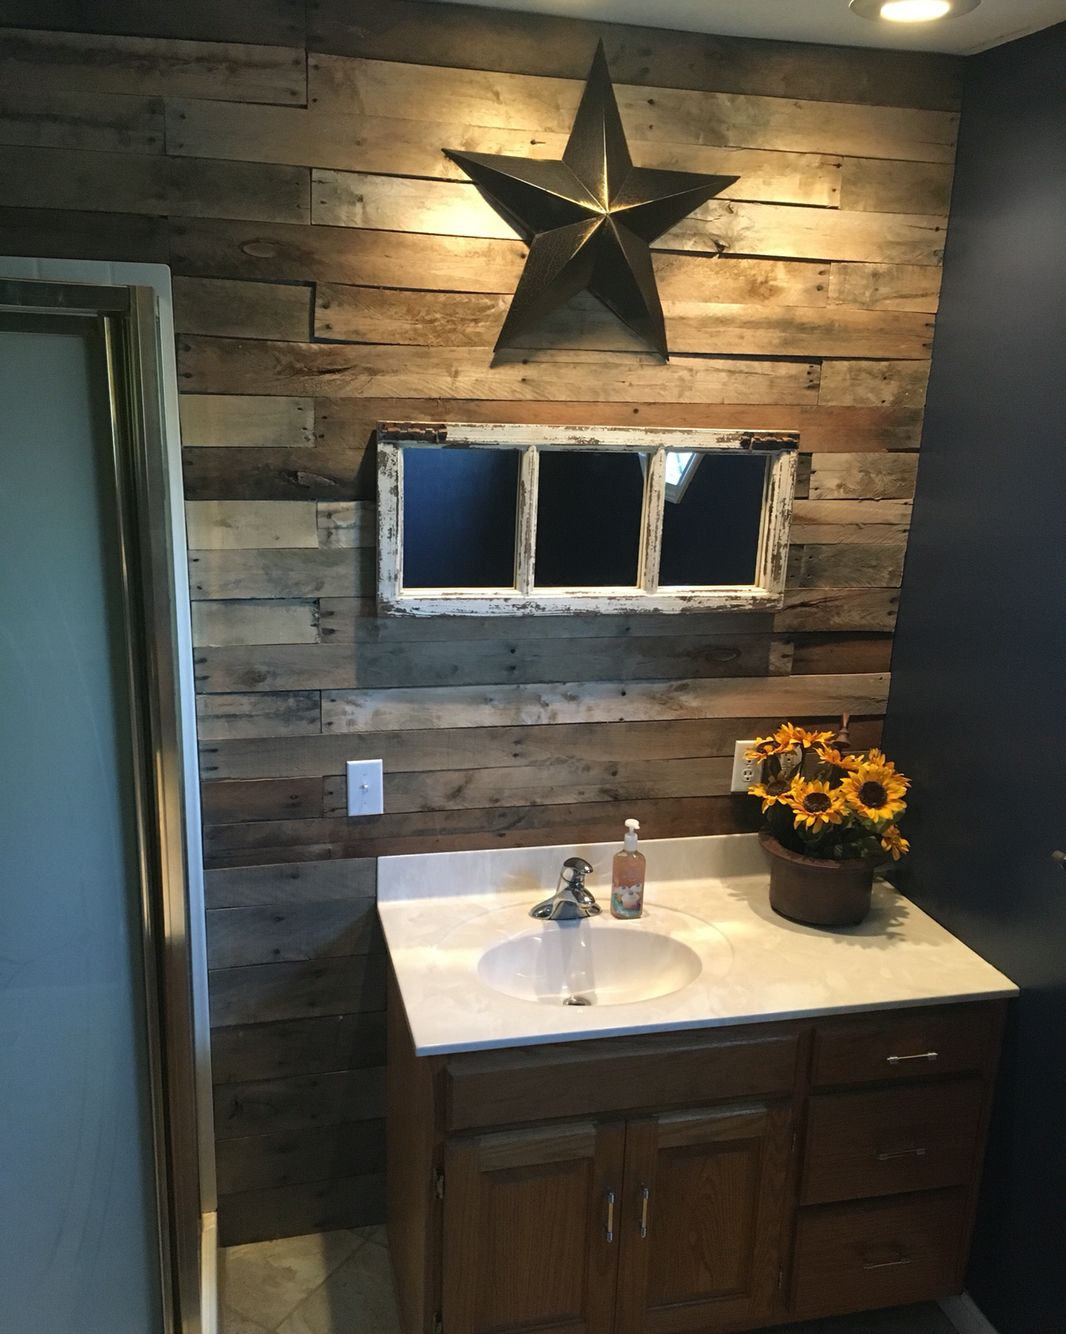 Rustic Bathroom Diy Rustic Bathroom Remodel Rustic Bathroom Diy Rustic Bathroom Vanities